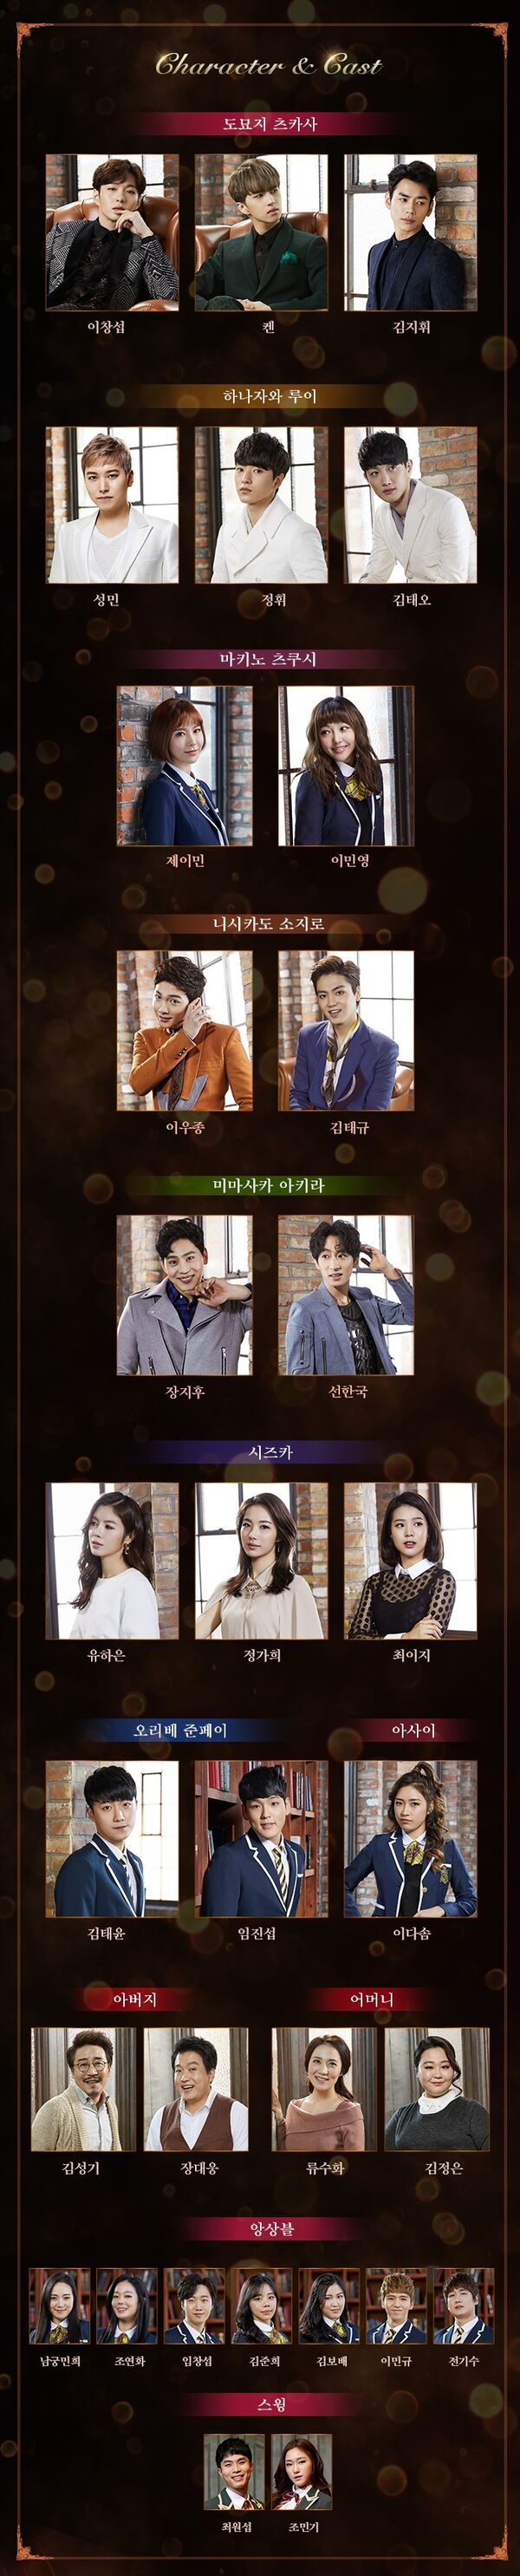 Cast and characters of Boys Over Flowers: The Musical (click above name for character and photo for actor)